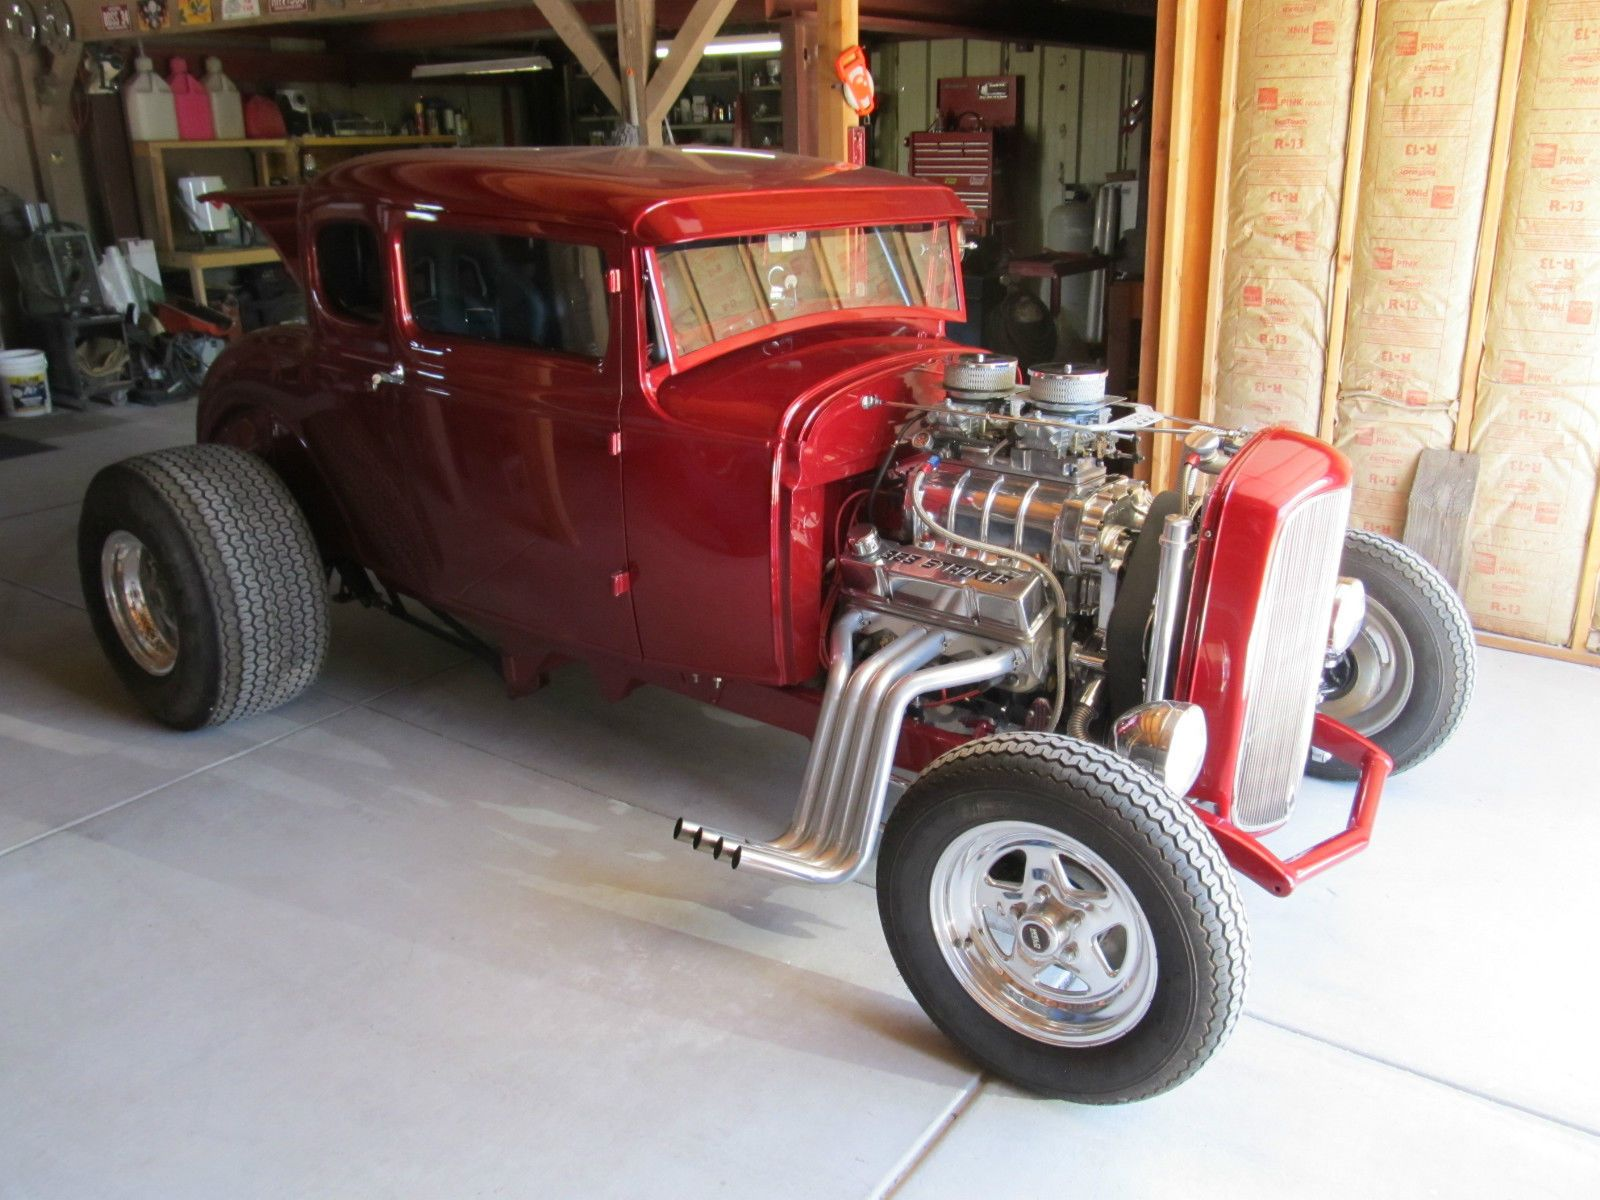 1931 Ford Model A hot rod streed rod | Hot rods for sale ...